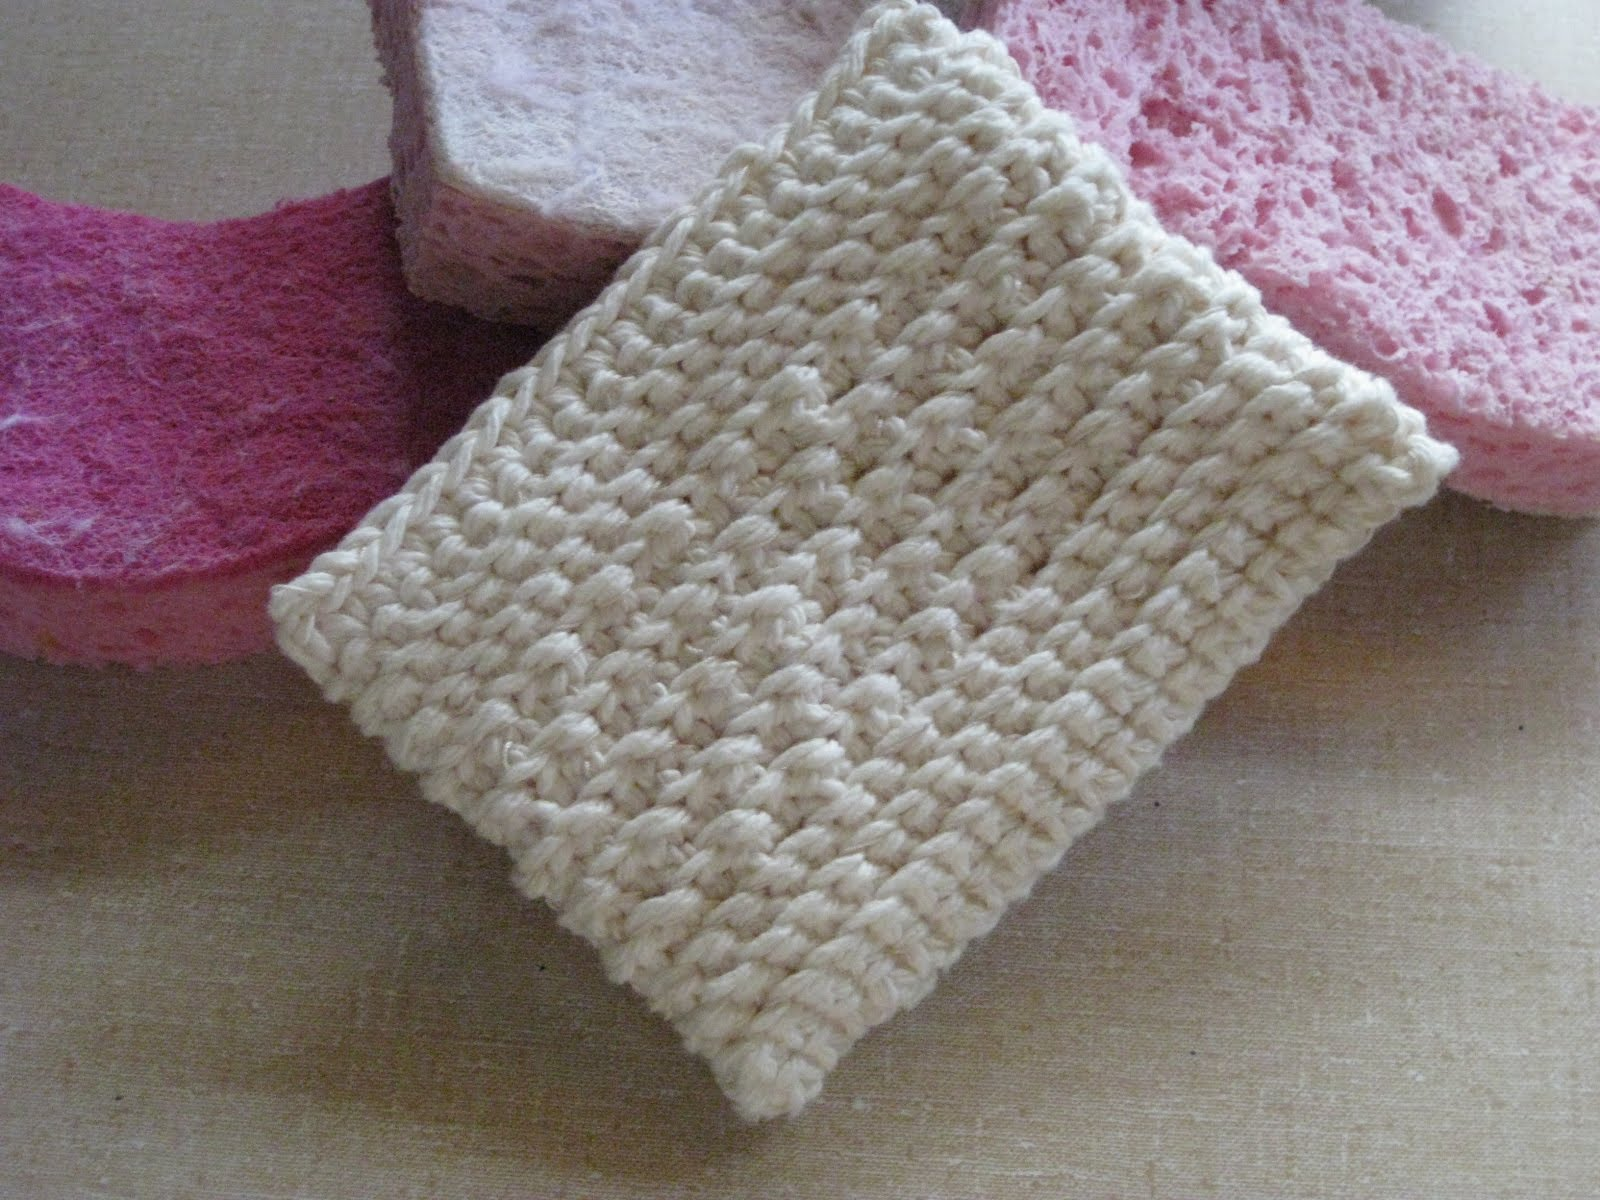 Crochet Patterns Scrubbies : ... crochet-pattern-for-multi-color-tawashi-scrubbie-japanese-dish